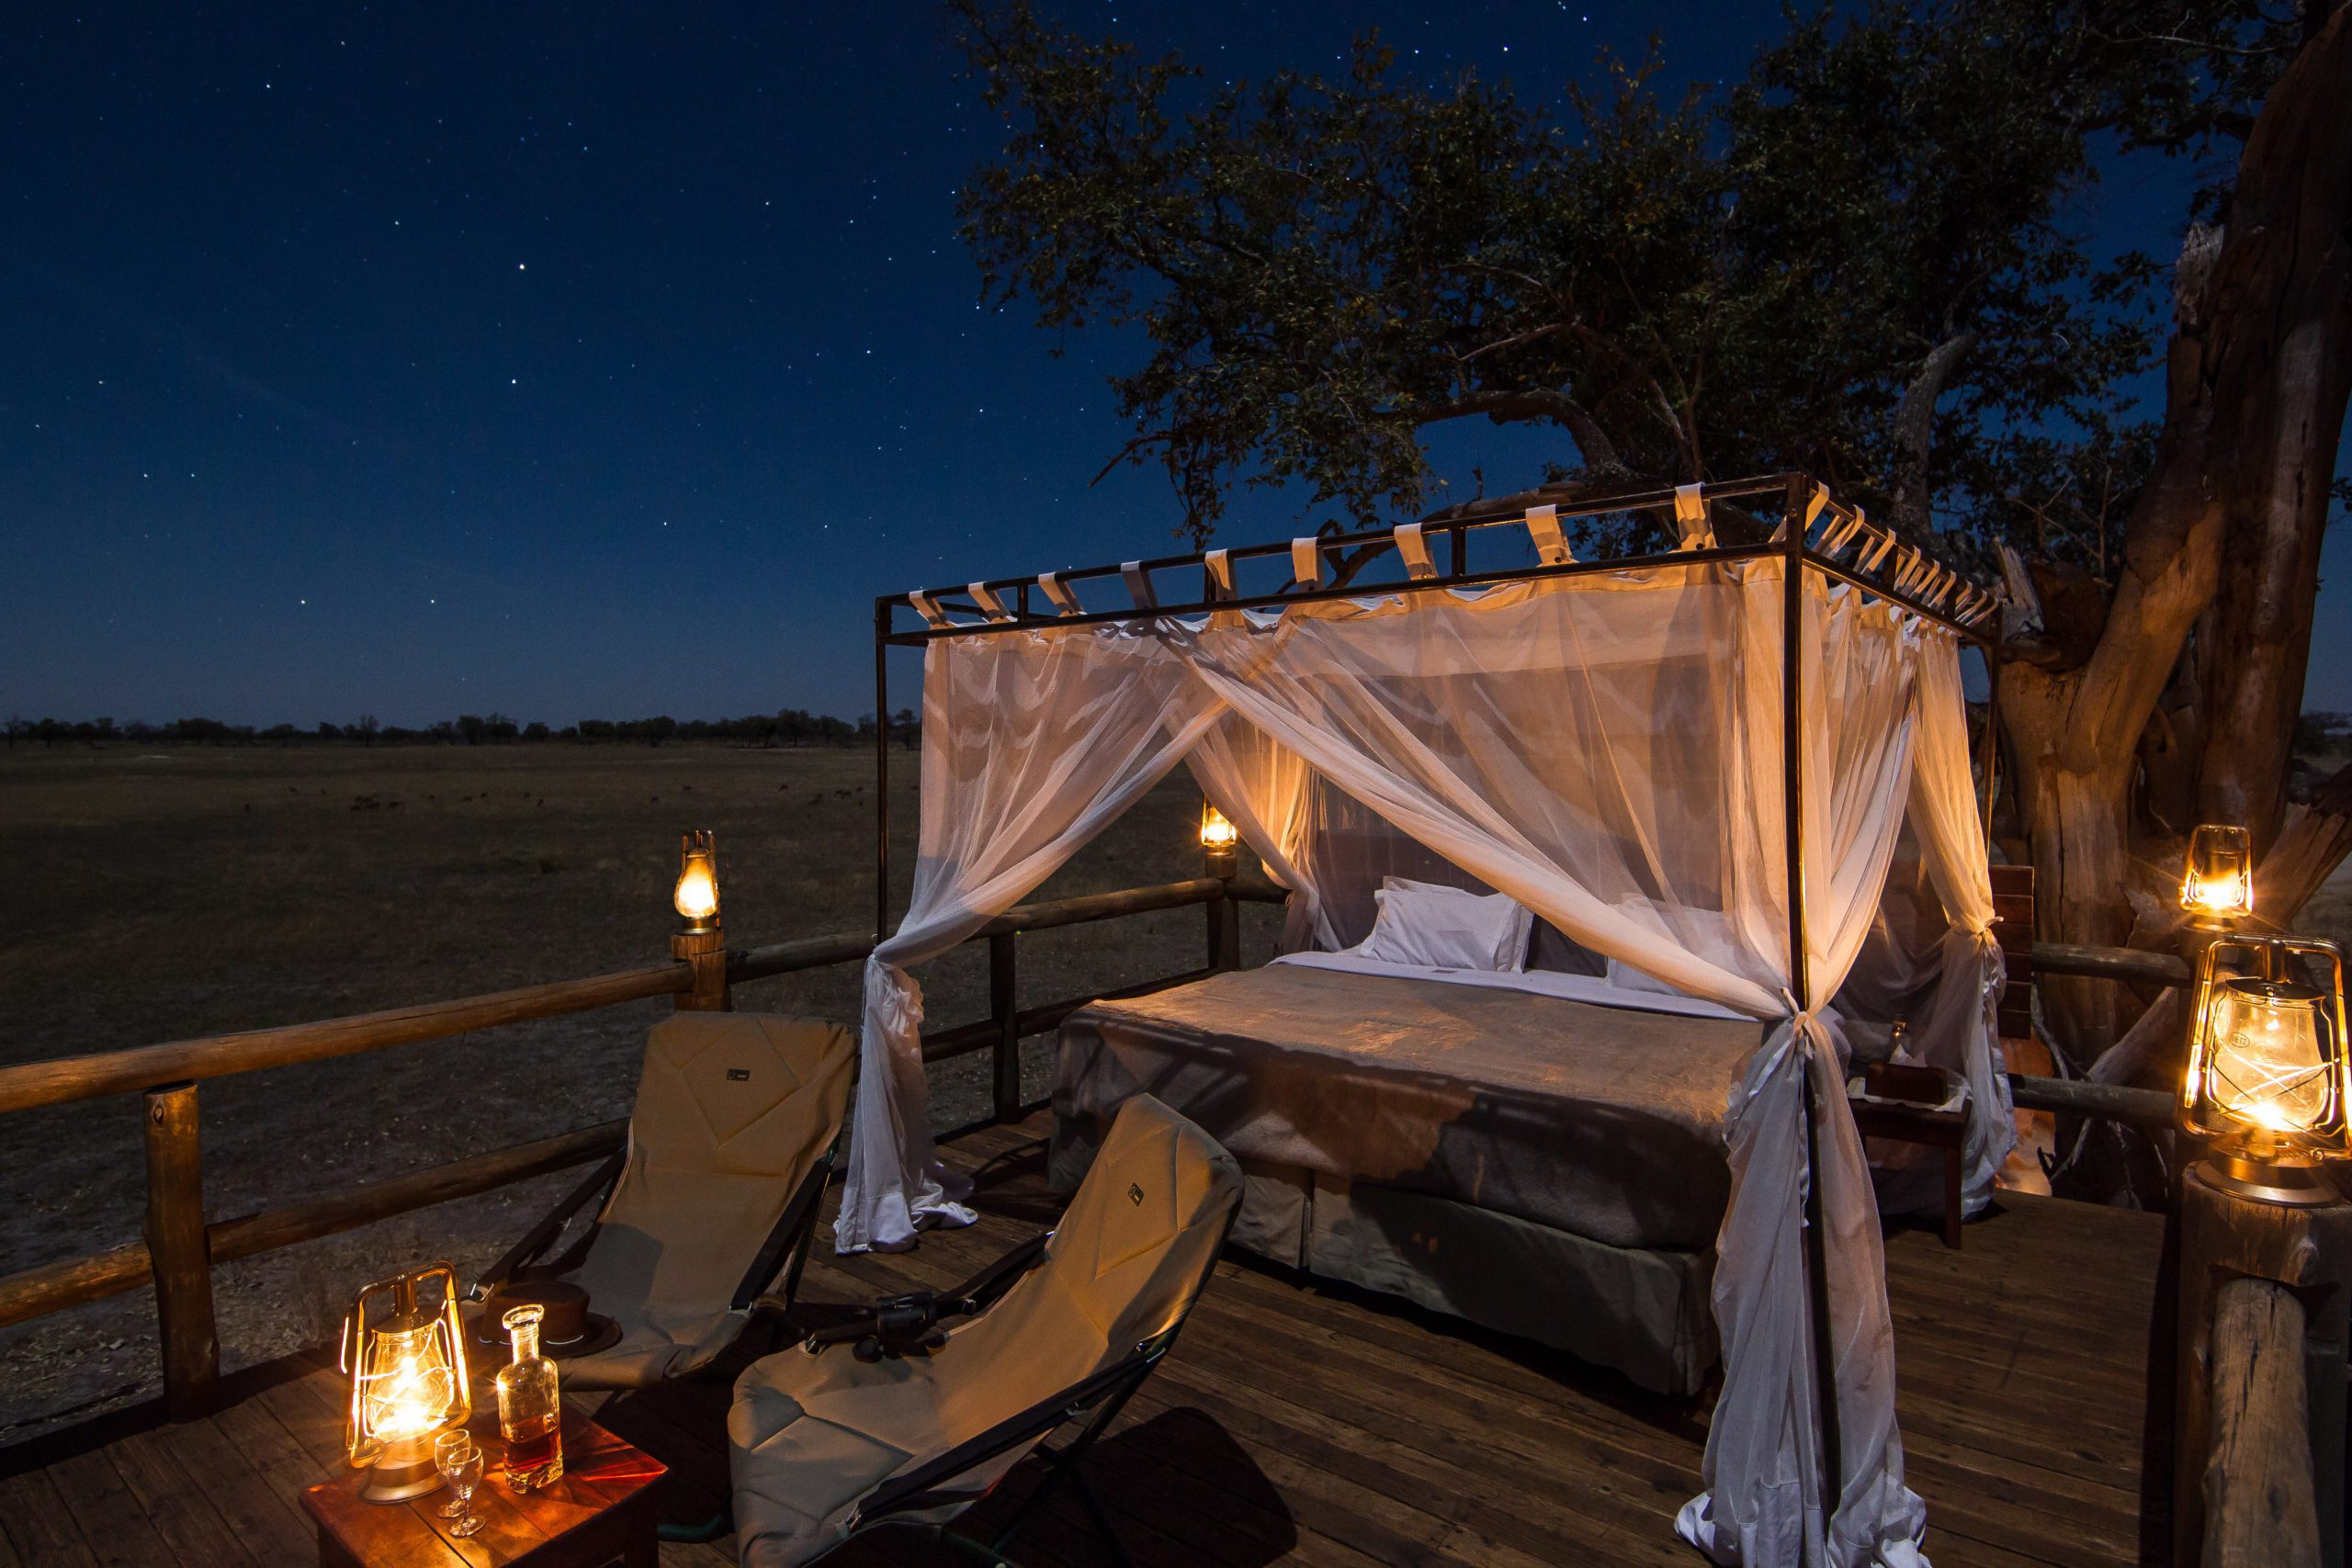 Kanana Camp fly camping on the star deck seen on our Botswana safari